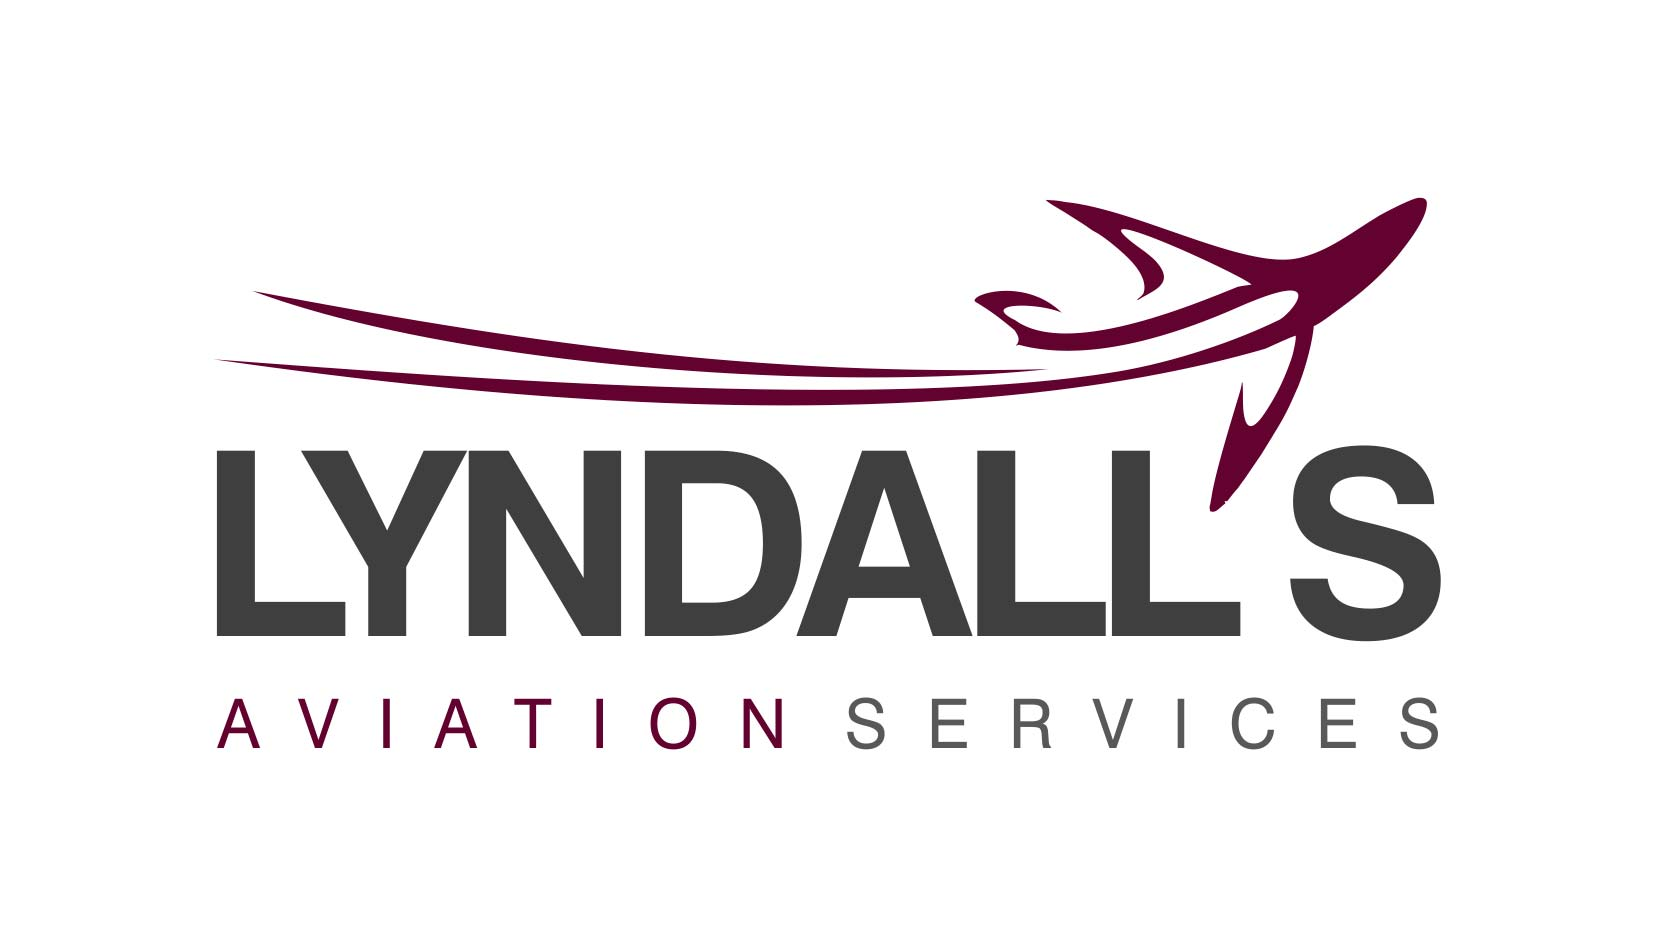 Lyndall's Aviation Services